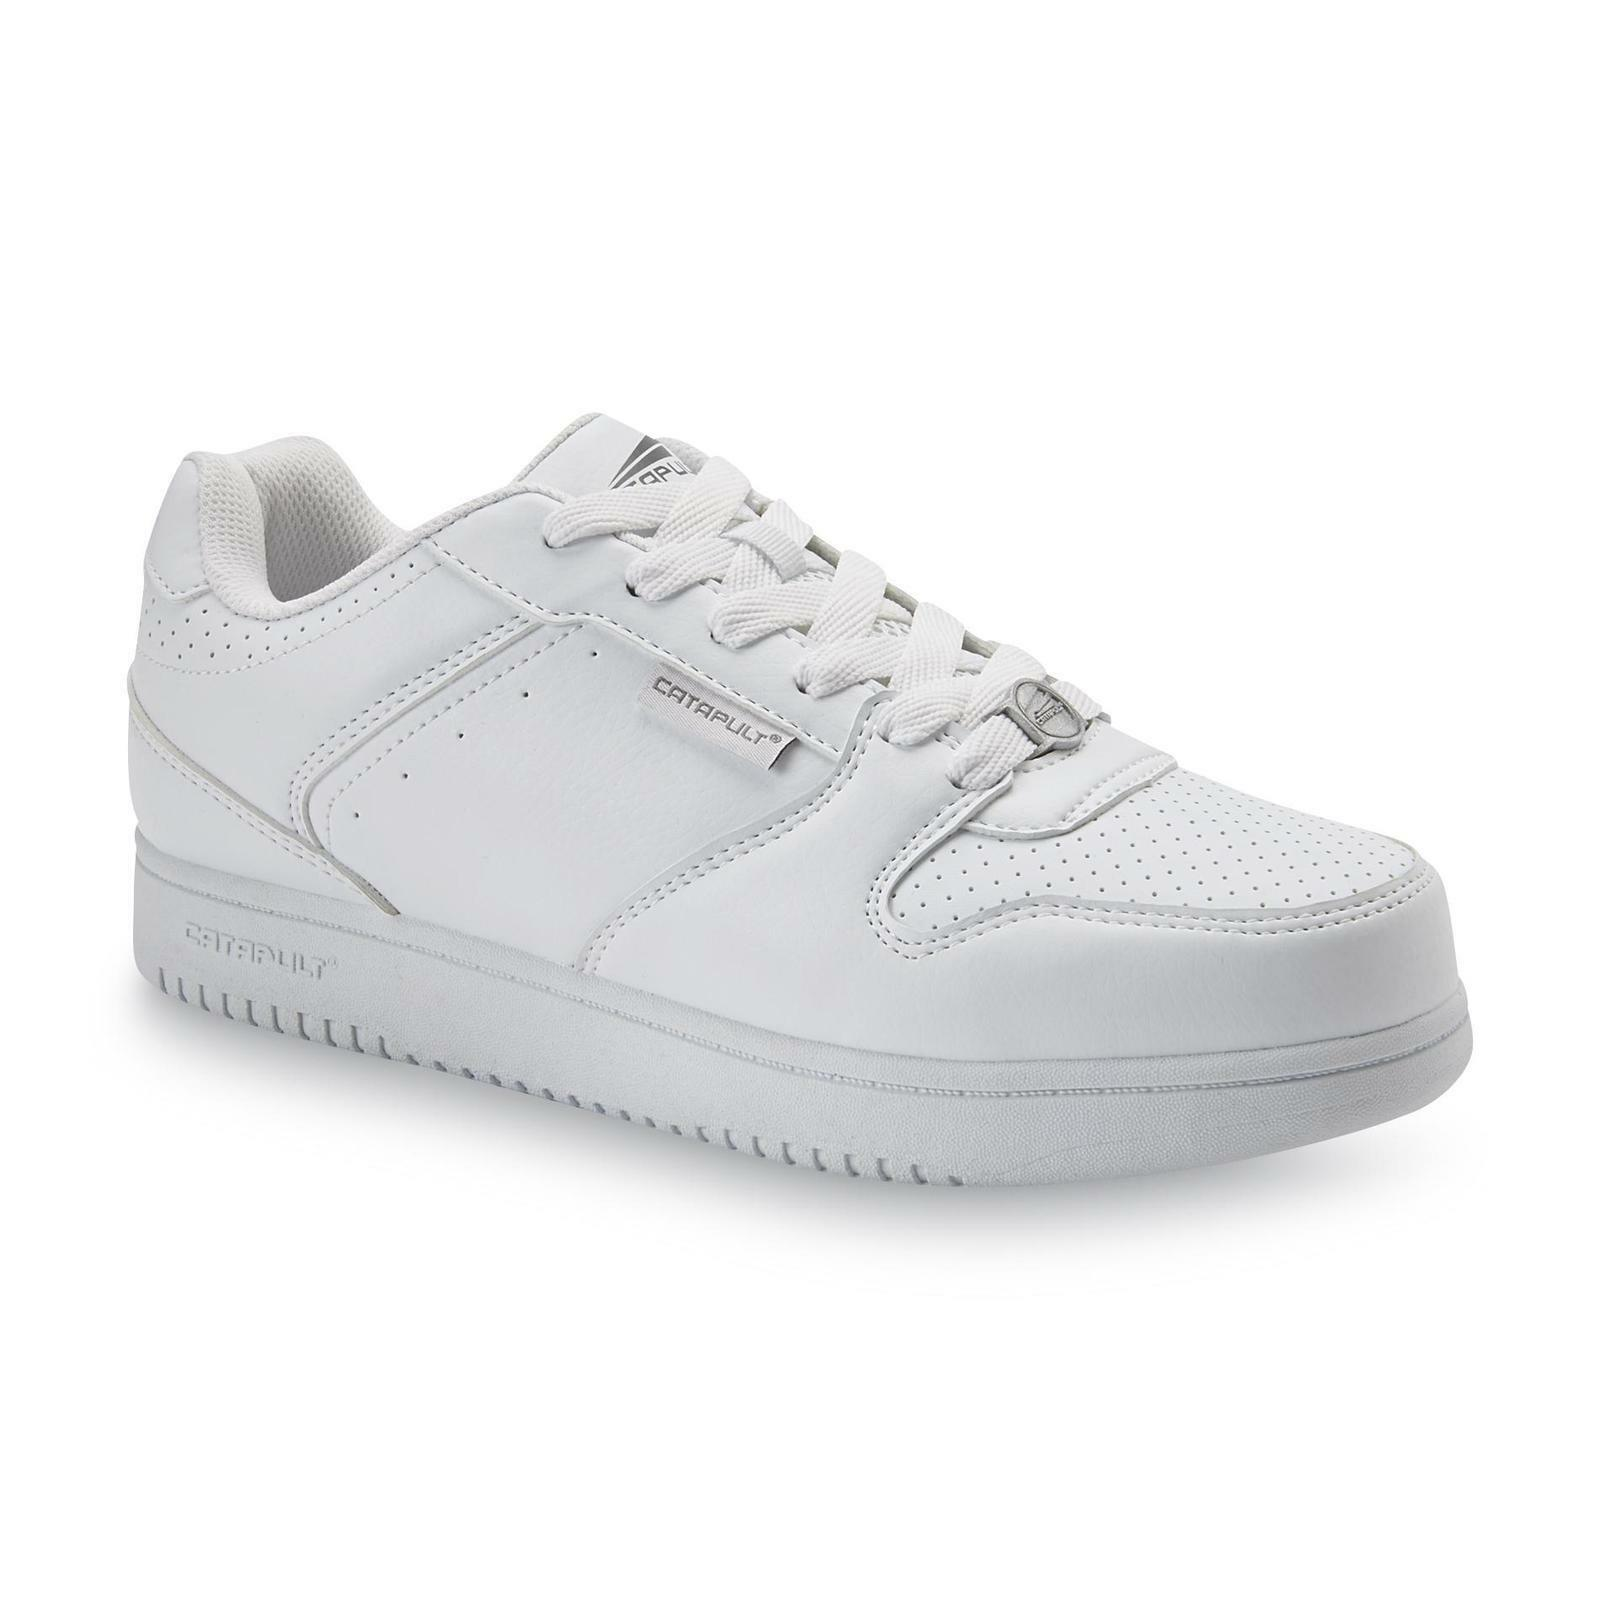 Catapult Men's Challenge White Basketball Athletic Tennis shoes